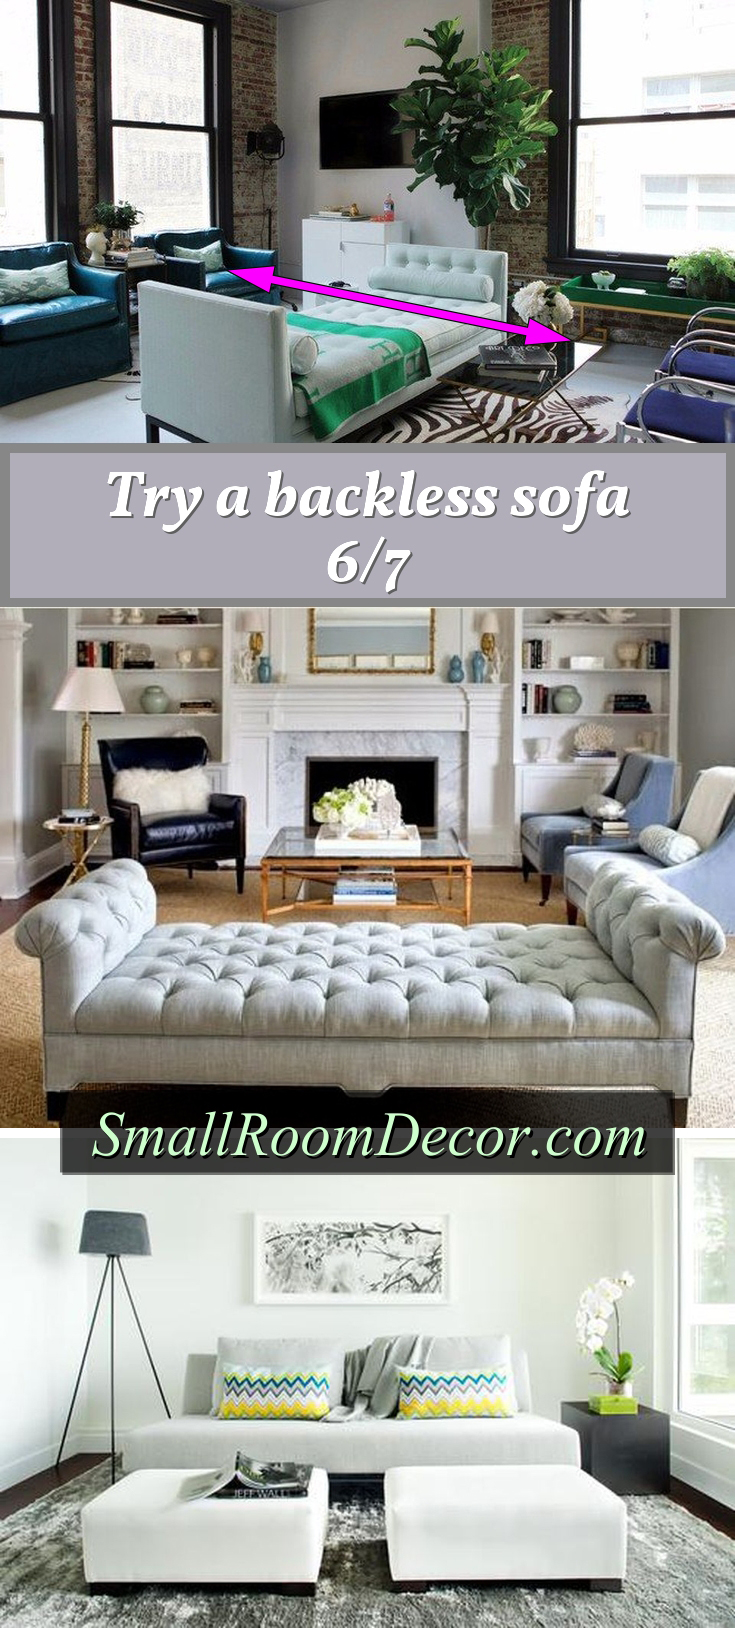 Backless sofa layout #livingroomsets